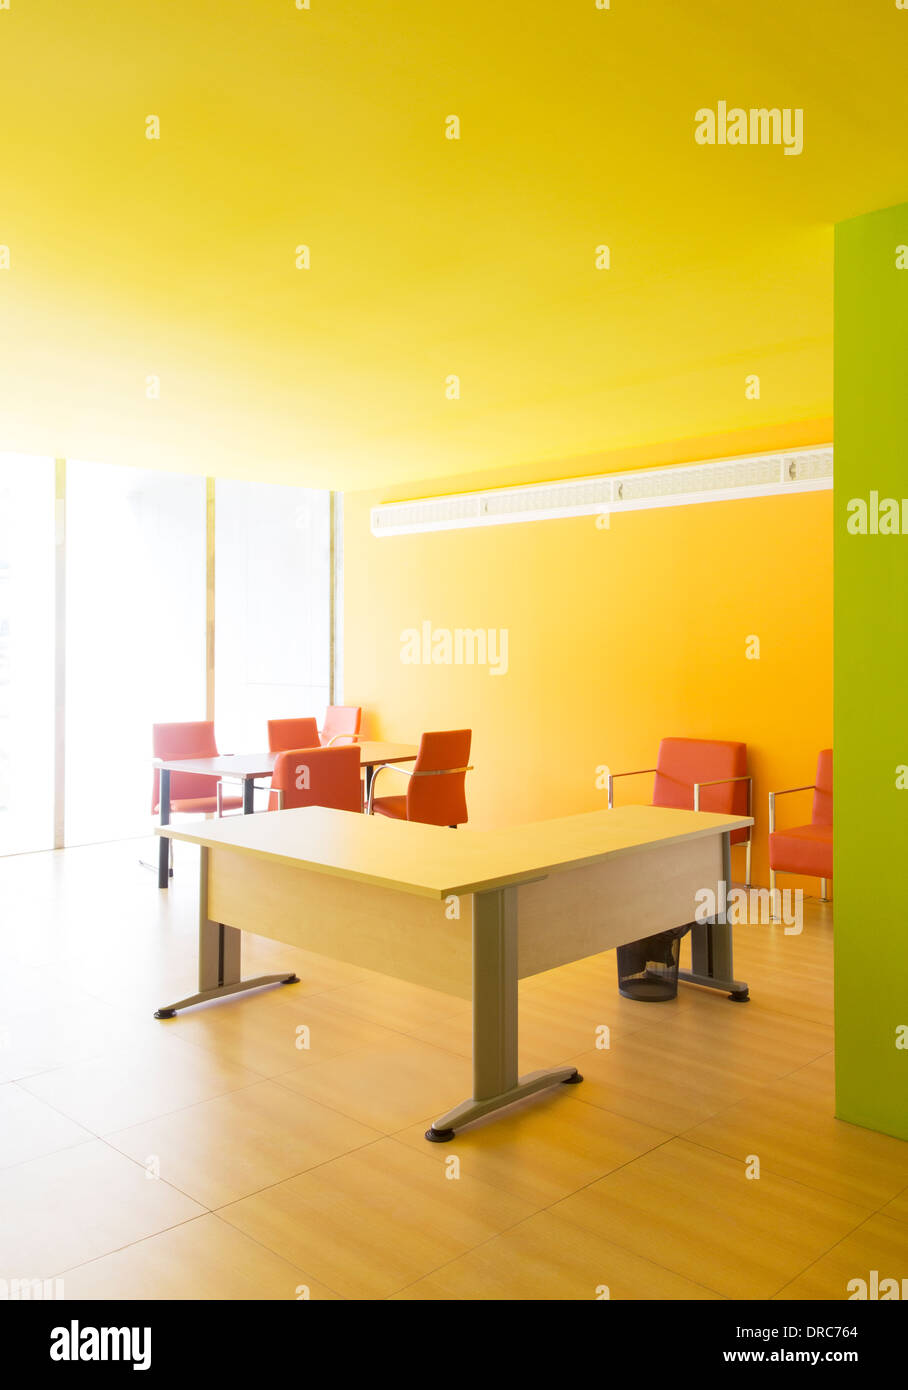 Desks and chairs in bright office - Stock Image